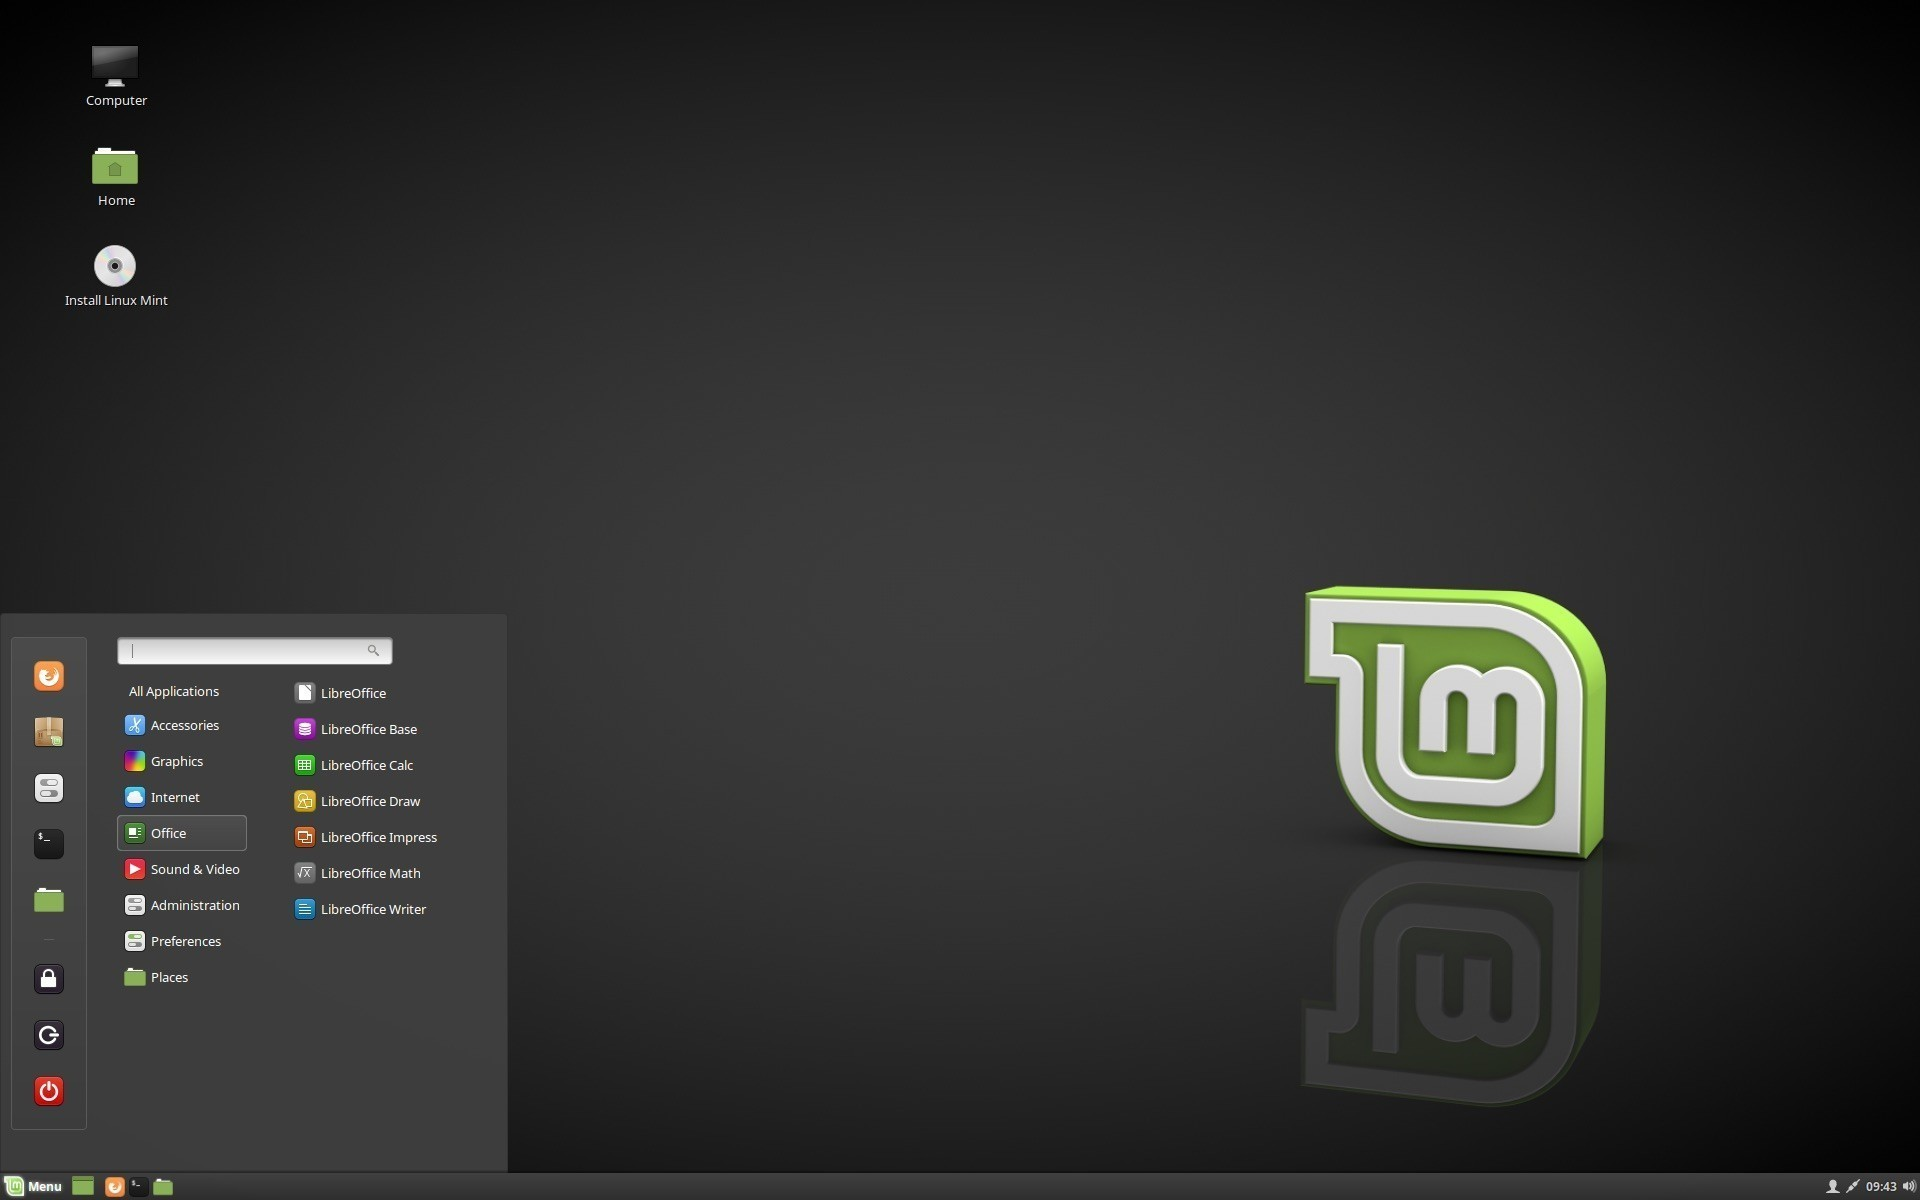 linux-mint-devs-to-enable-faster-launching-of-apps-on-cinnamon-for-linux-mint-19-520248-2.jpg